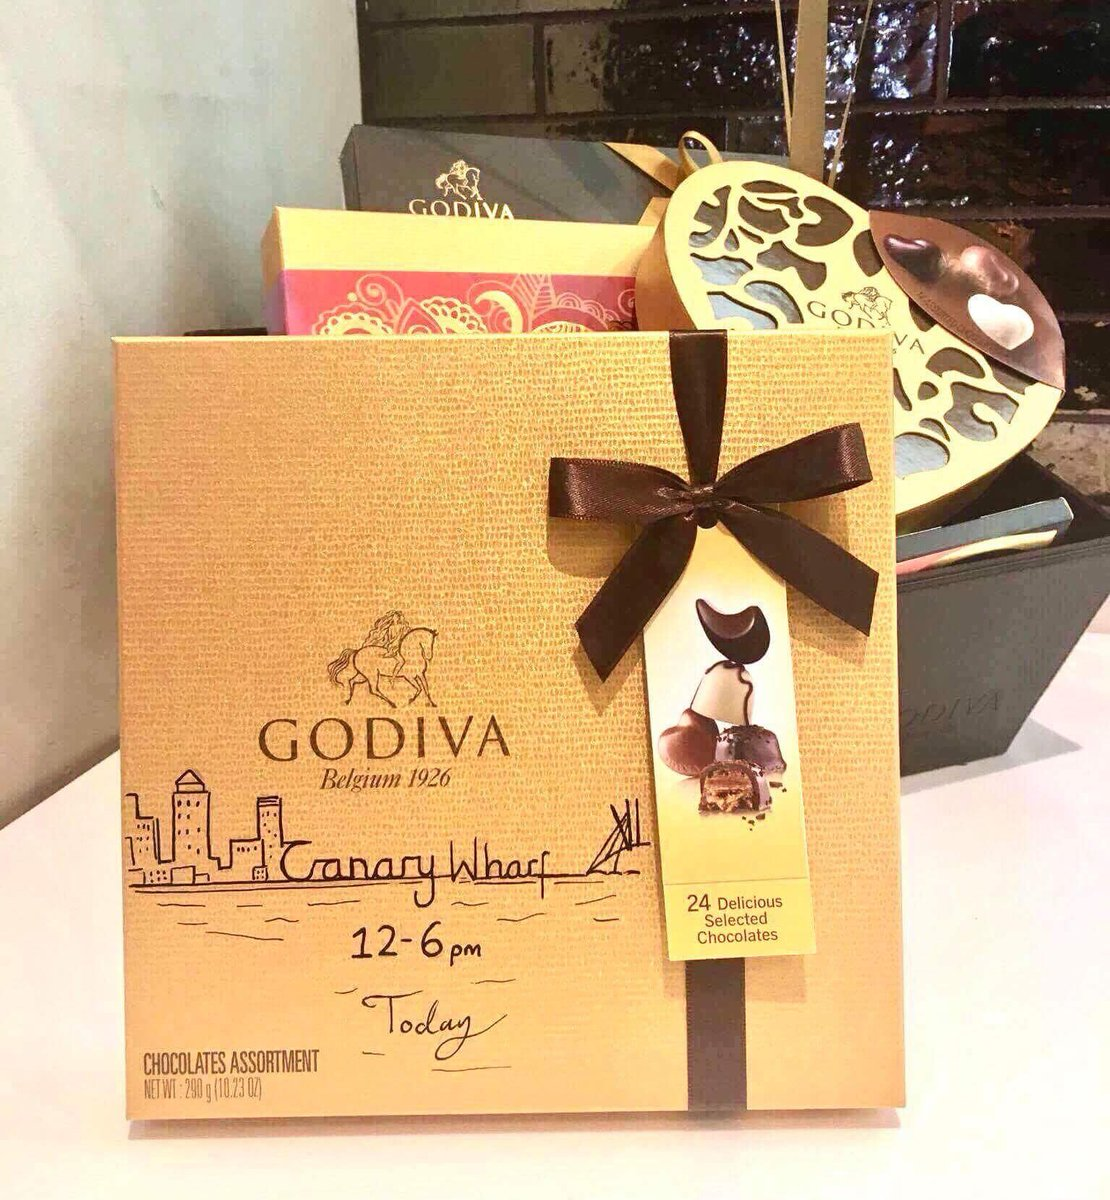 Godiva Chocolates Uk On Twitter Visit Our Canary Wharf Store Today